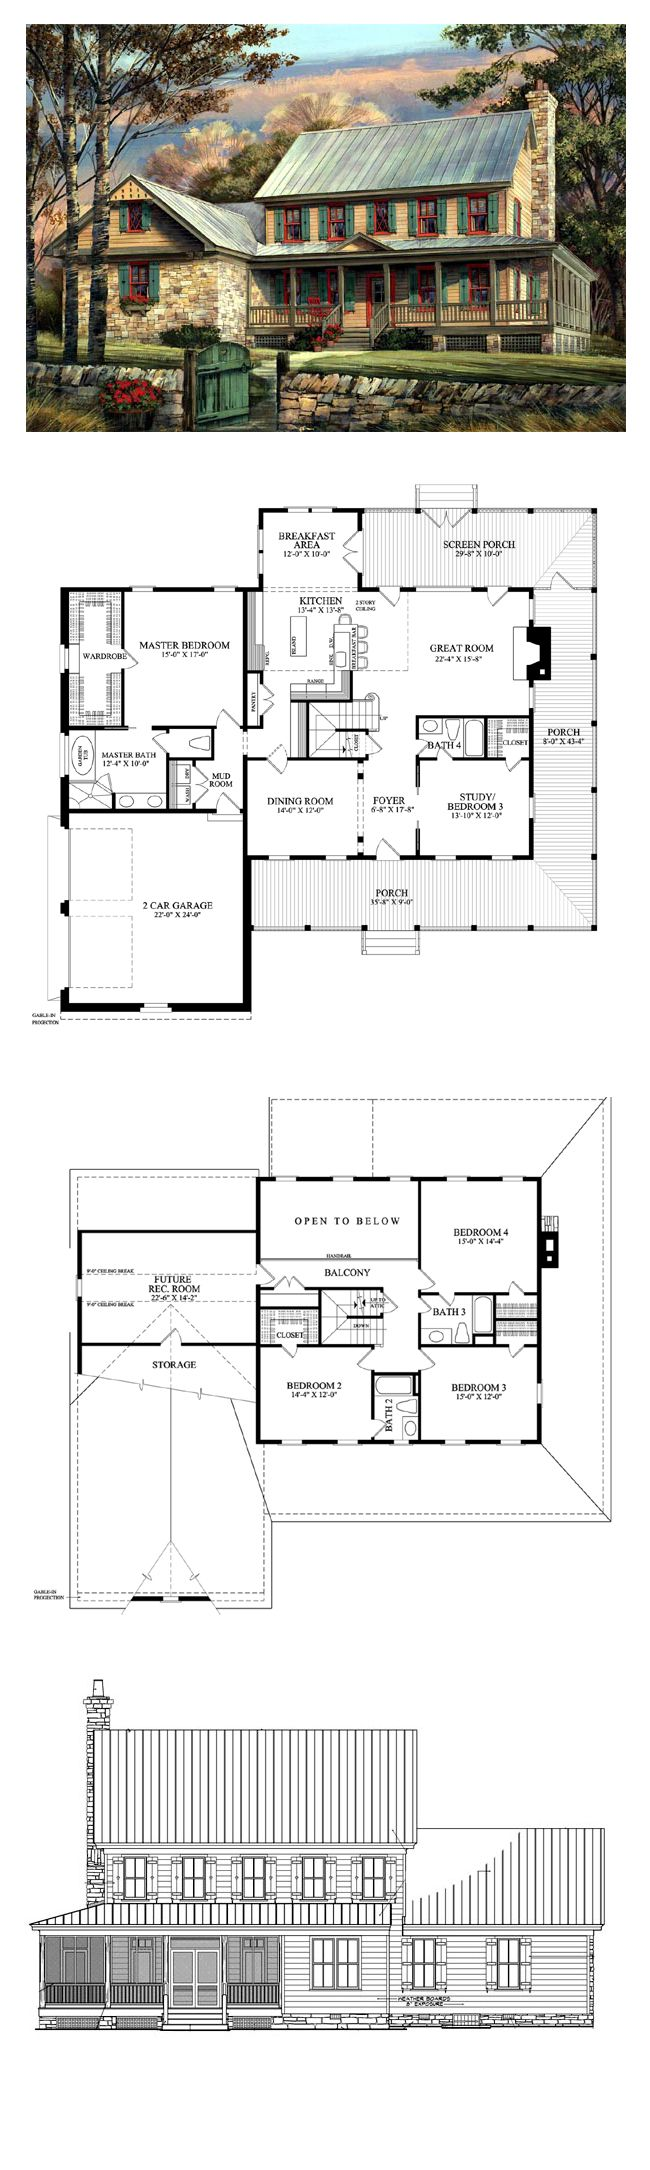 5 master bedroom house plans   best Home images on Pinterest  Dreams Future house and Home plans